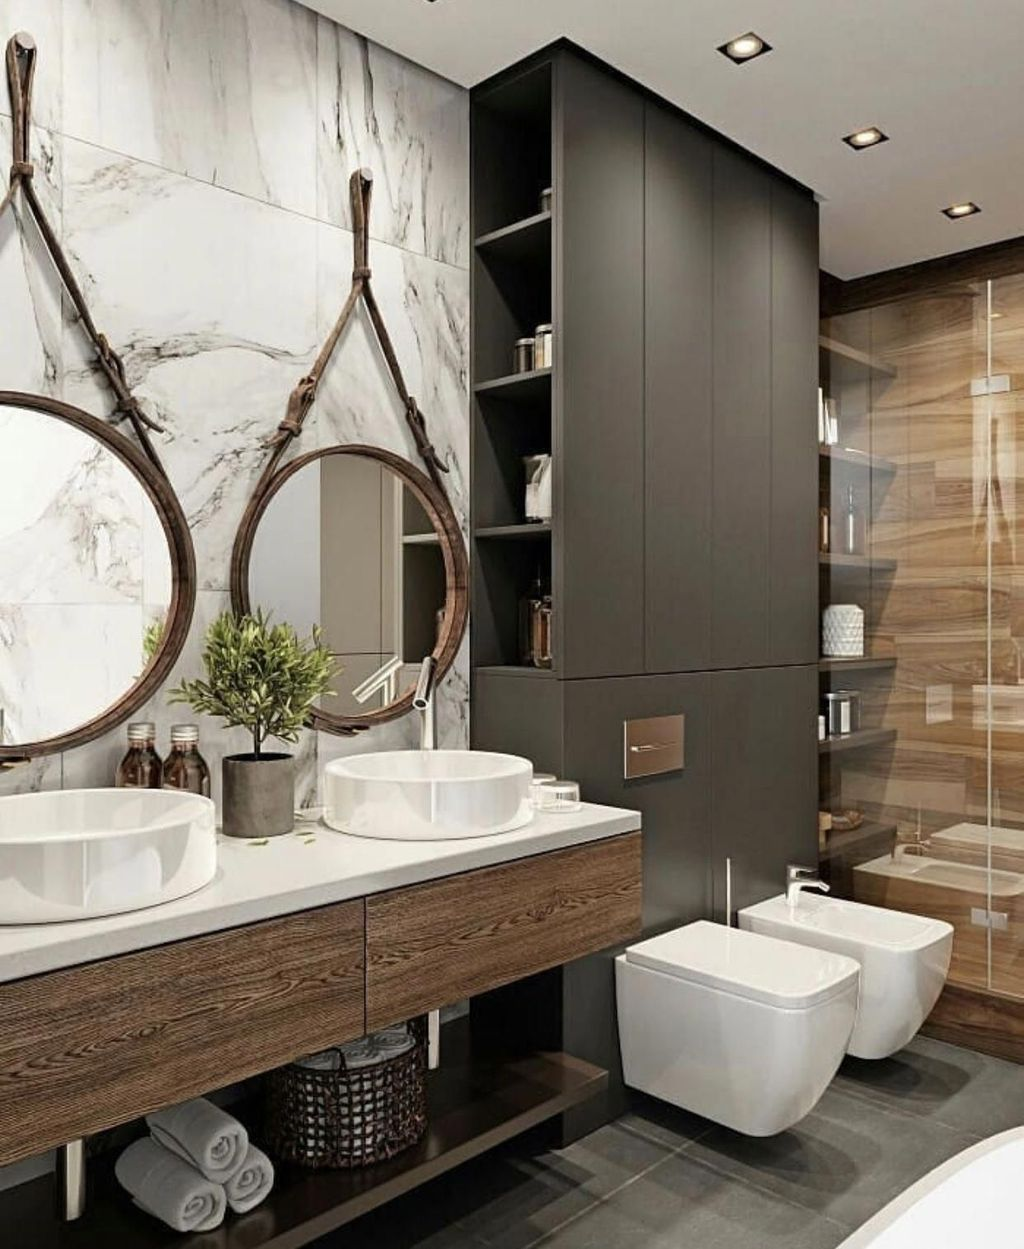 Stunning Industrial Bathroom Design Ideas 06